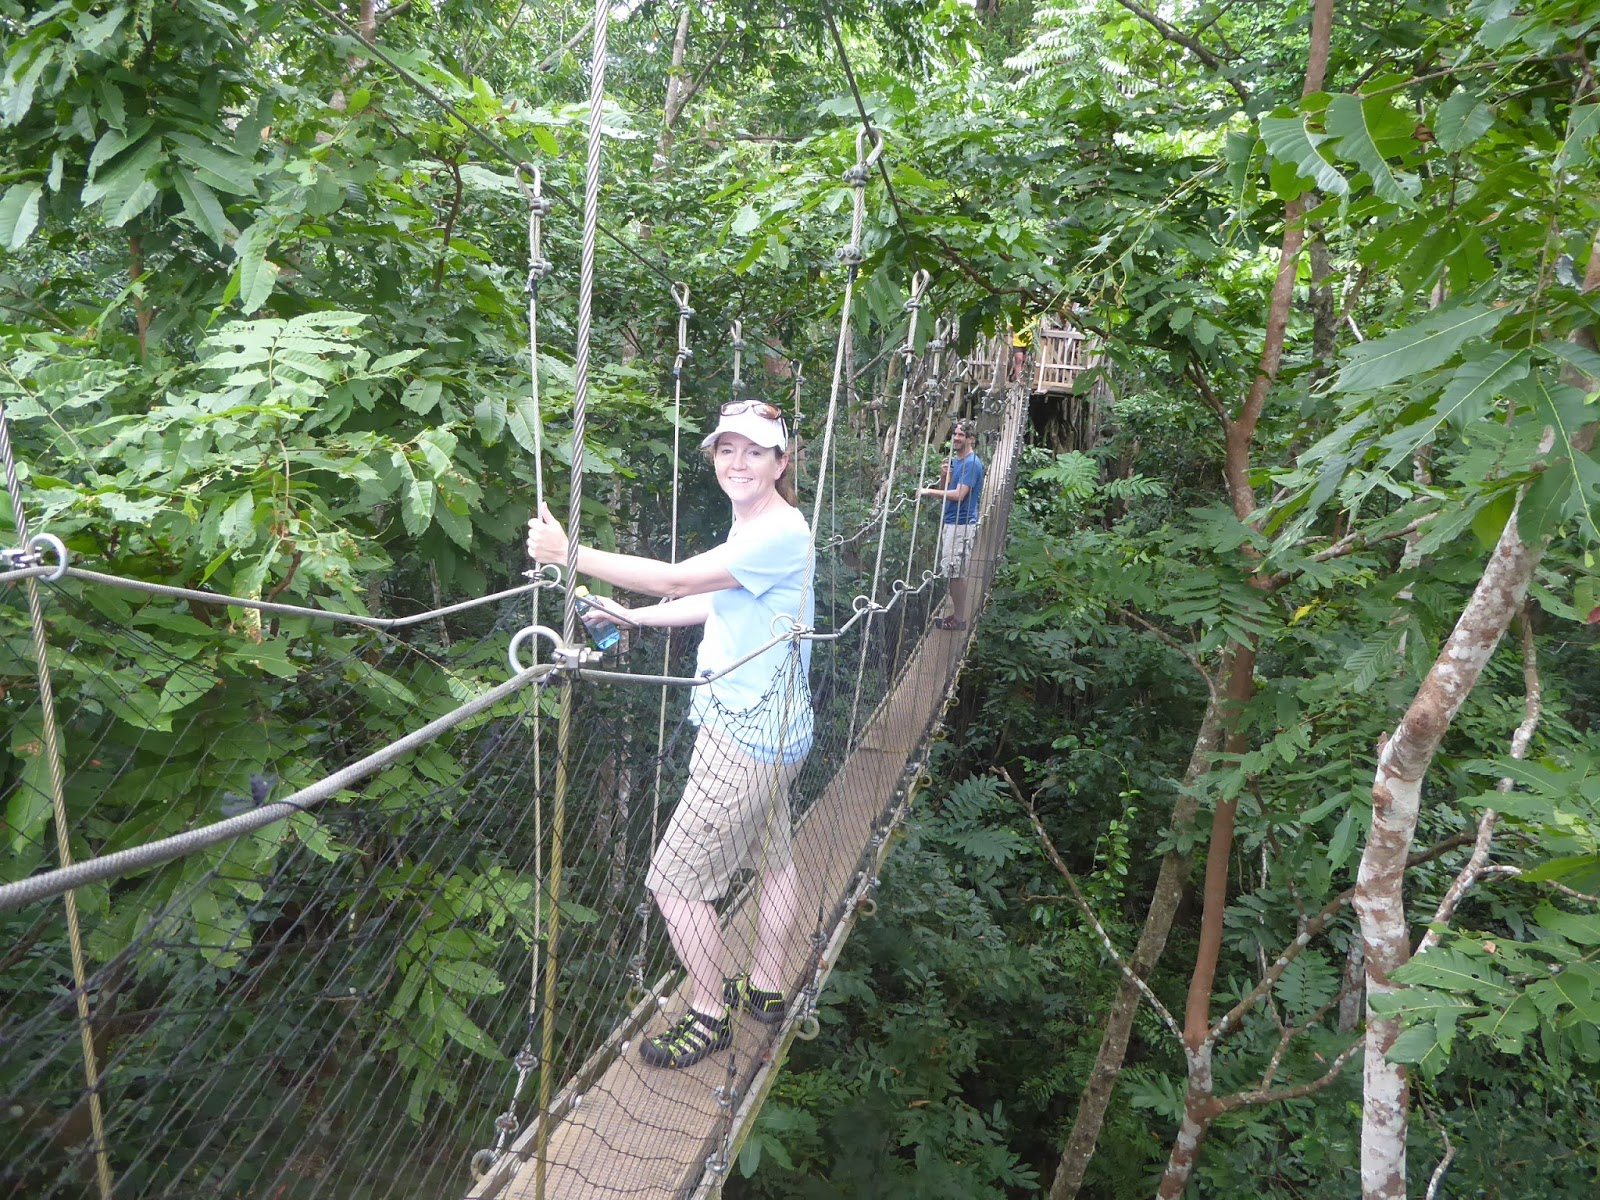 Now this is a serious Swiss Family Robison tree and possible tree house. The view of the rainforest canopy is magnificent! : canopy walkway samoa - memphite.com